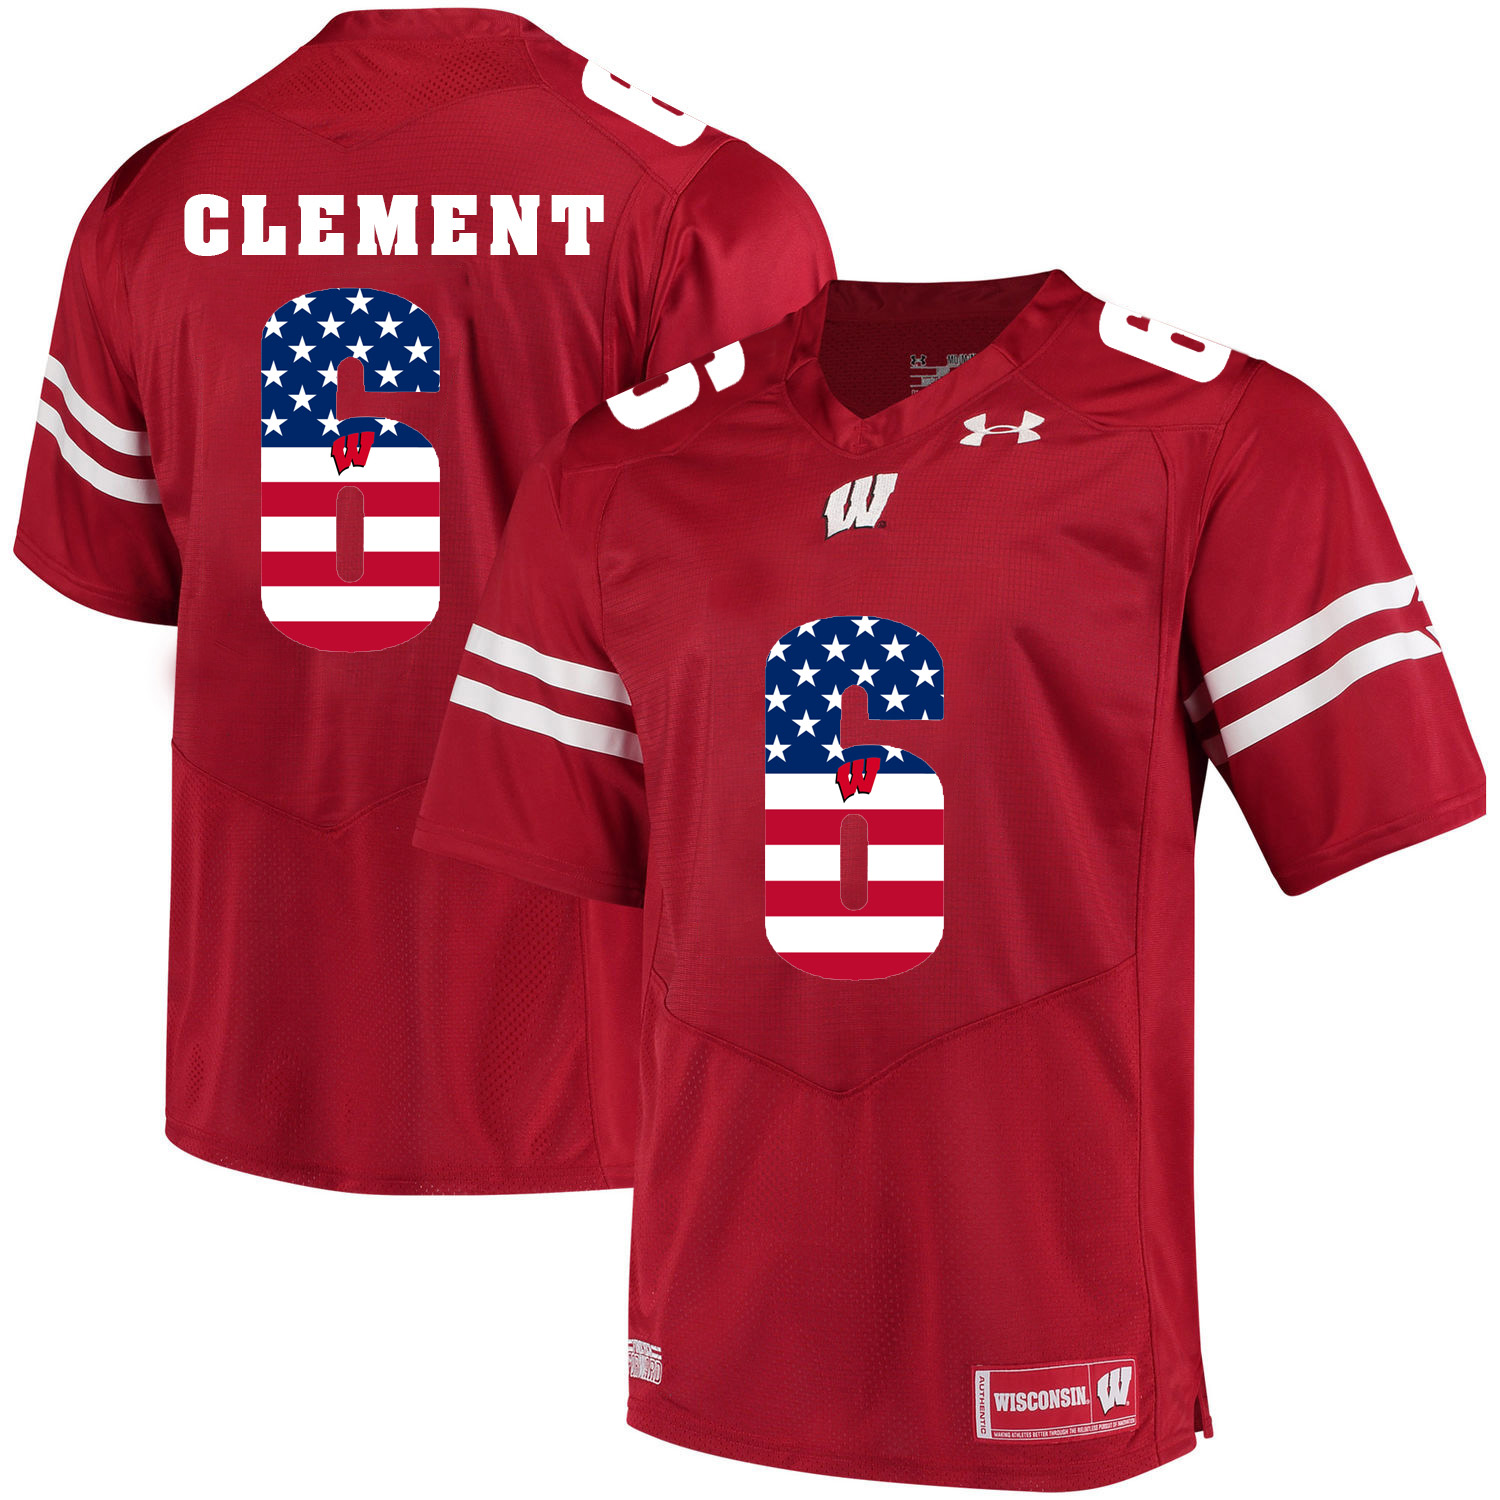 Wisconsin Badgers 6 Corey Clement Red USA Flag College Football Jersey